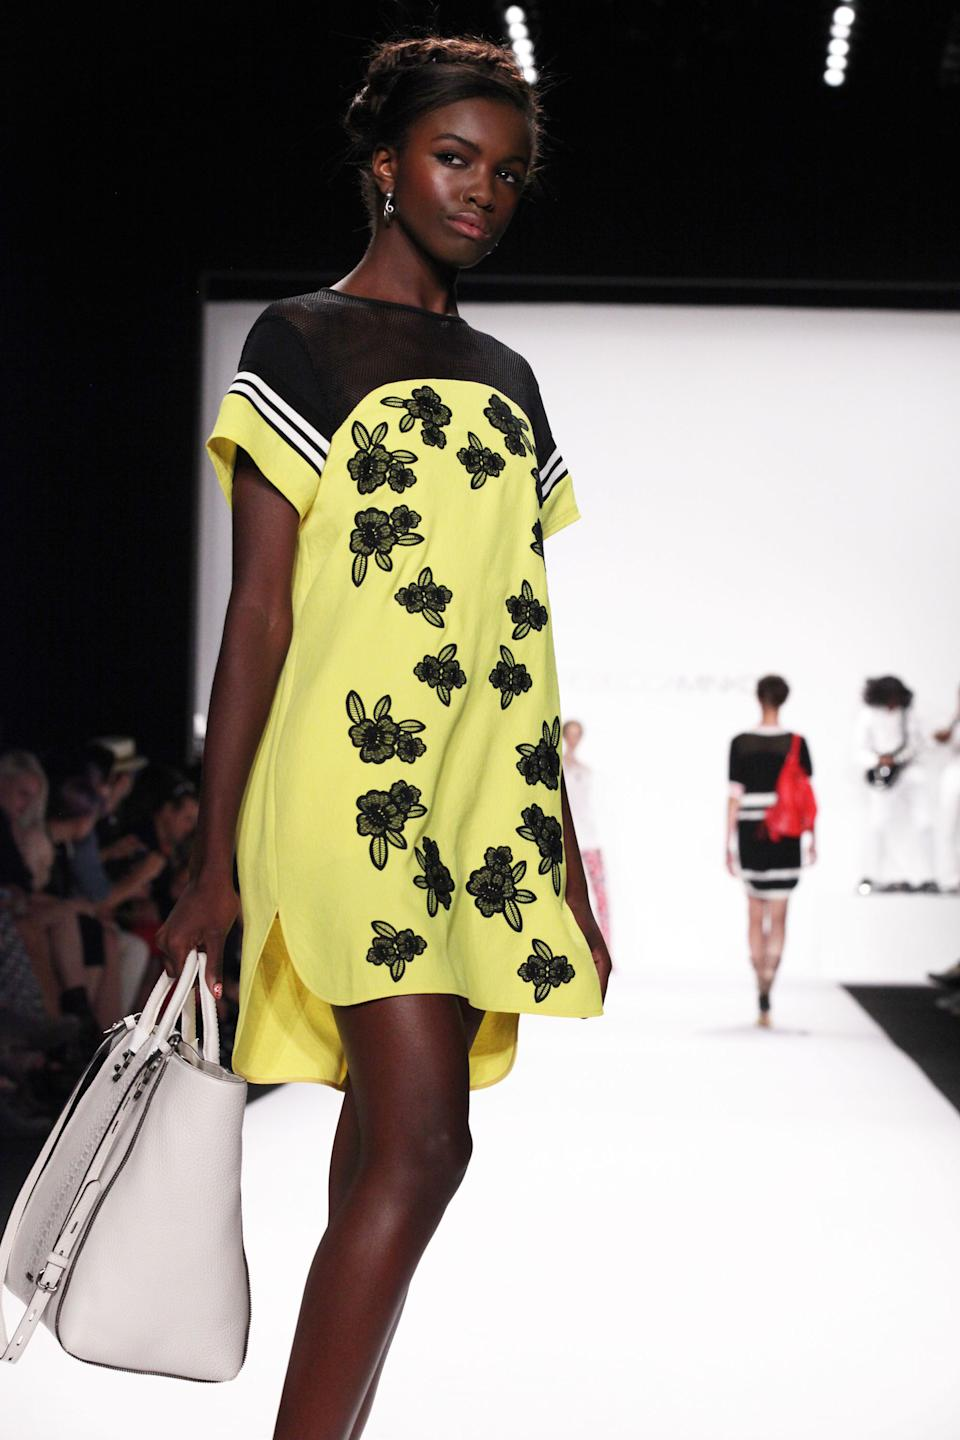 The Rebecca Minkoff Spring Summer 2014 collection is modeled at New York Fashion Week on Friday, Sept. 6, 2013 in New York. (AP Photo/Lisa Tolin)